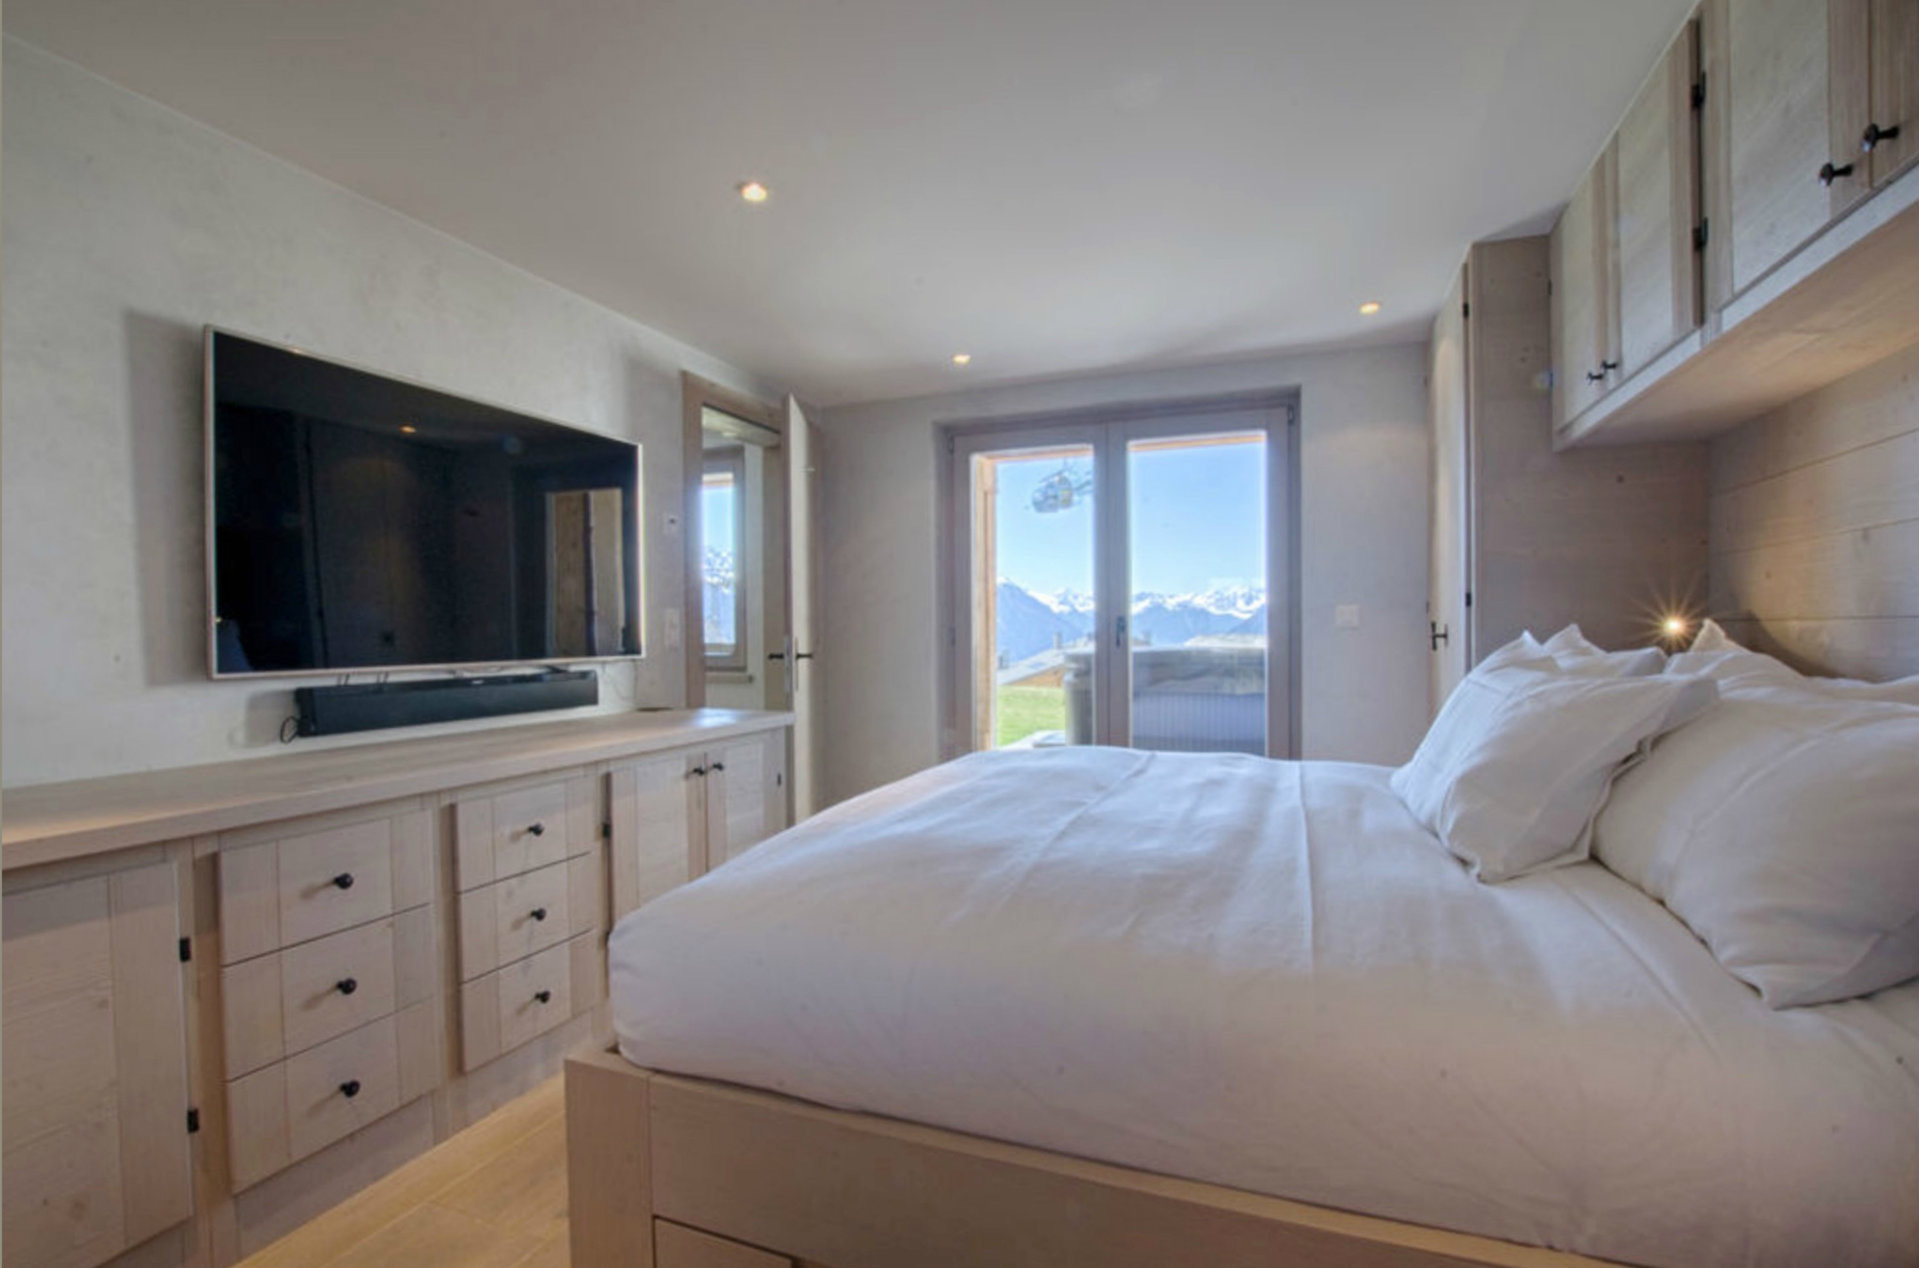 Apartment with a view of the Alps in Verbier, in the area of Medran street, Switzerland